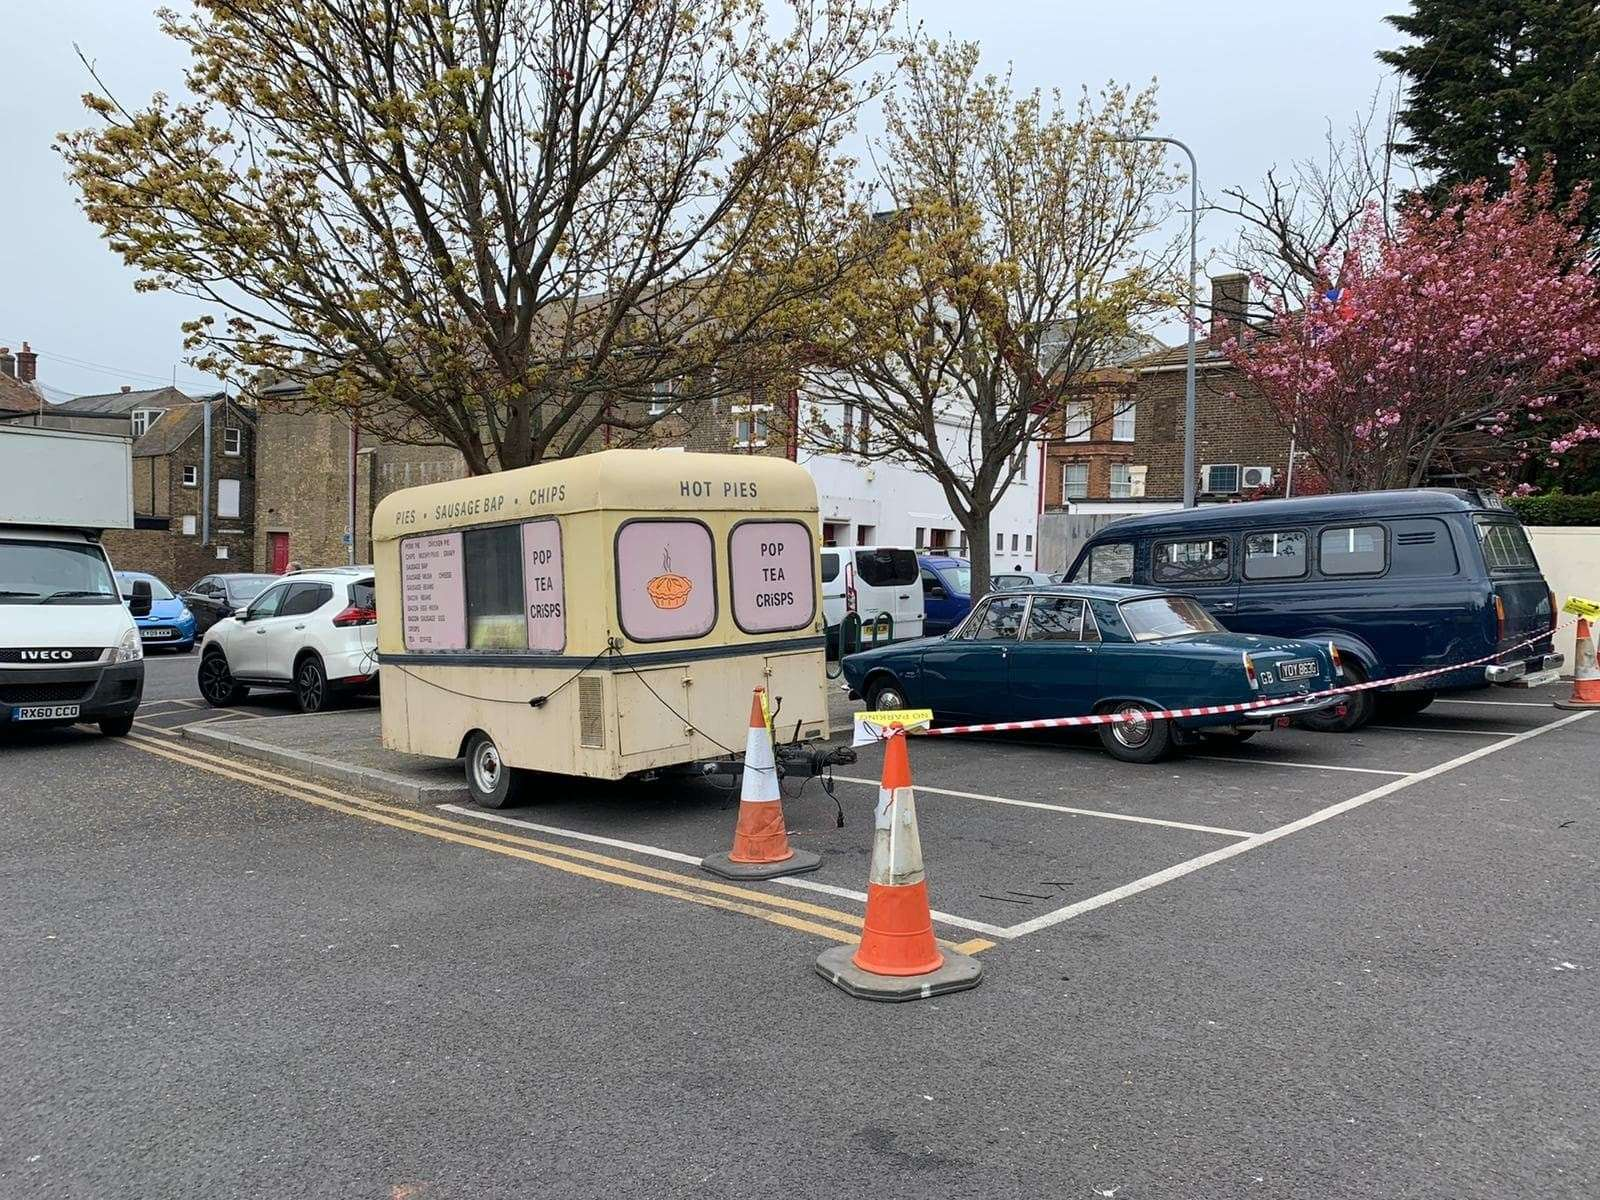 Period vehicles for the filming. The car is a Rover P6 and the van, a Ford Transit